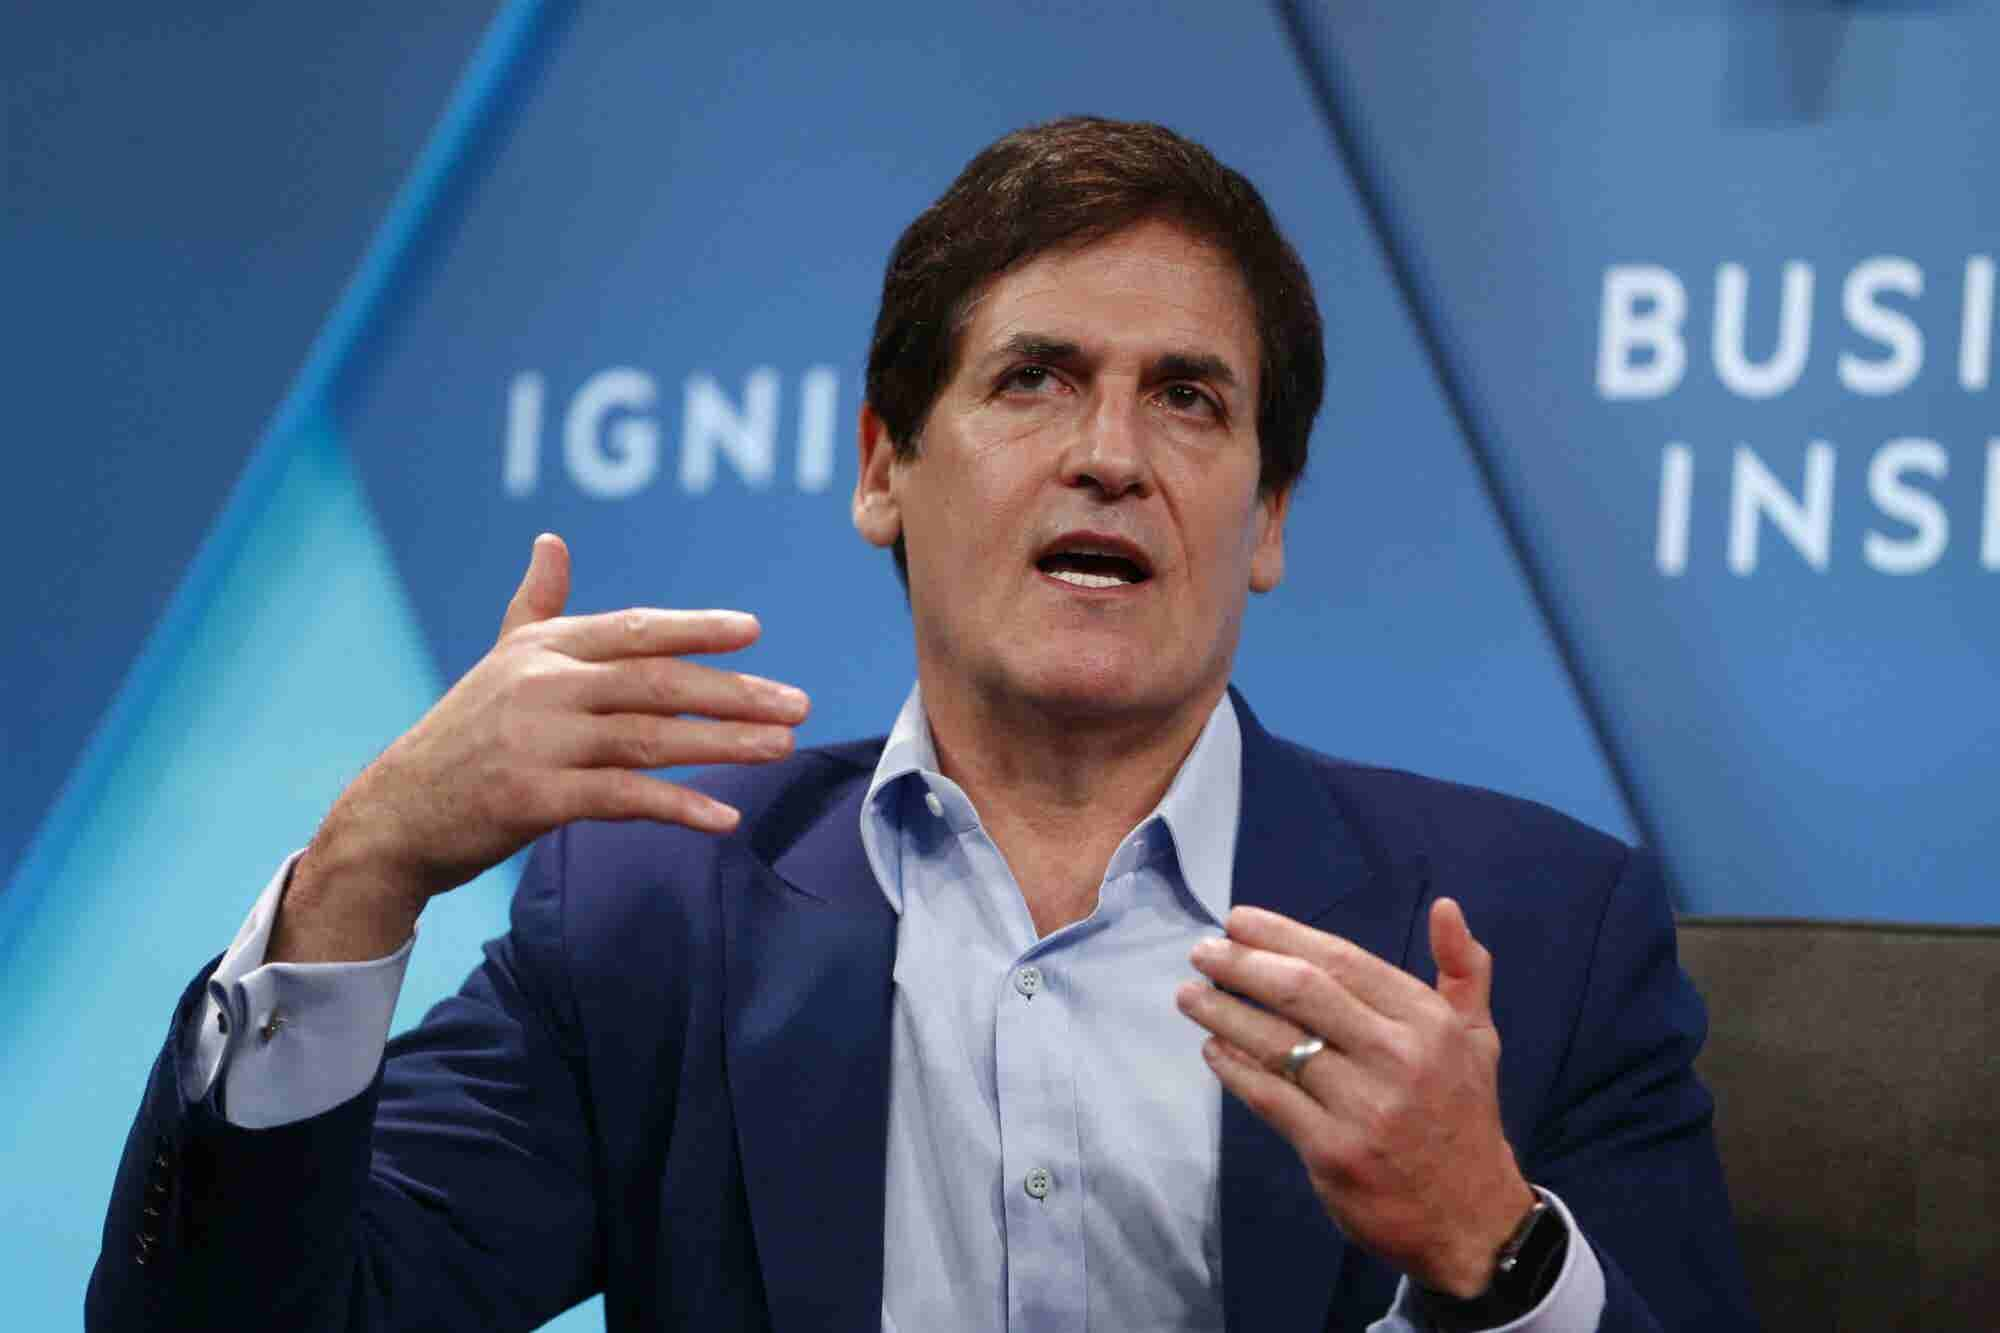 Mark Cuban Said Running for President Would be the 'Definition of Bad Parenting' But He Might Go for It Anyway